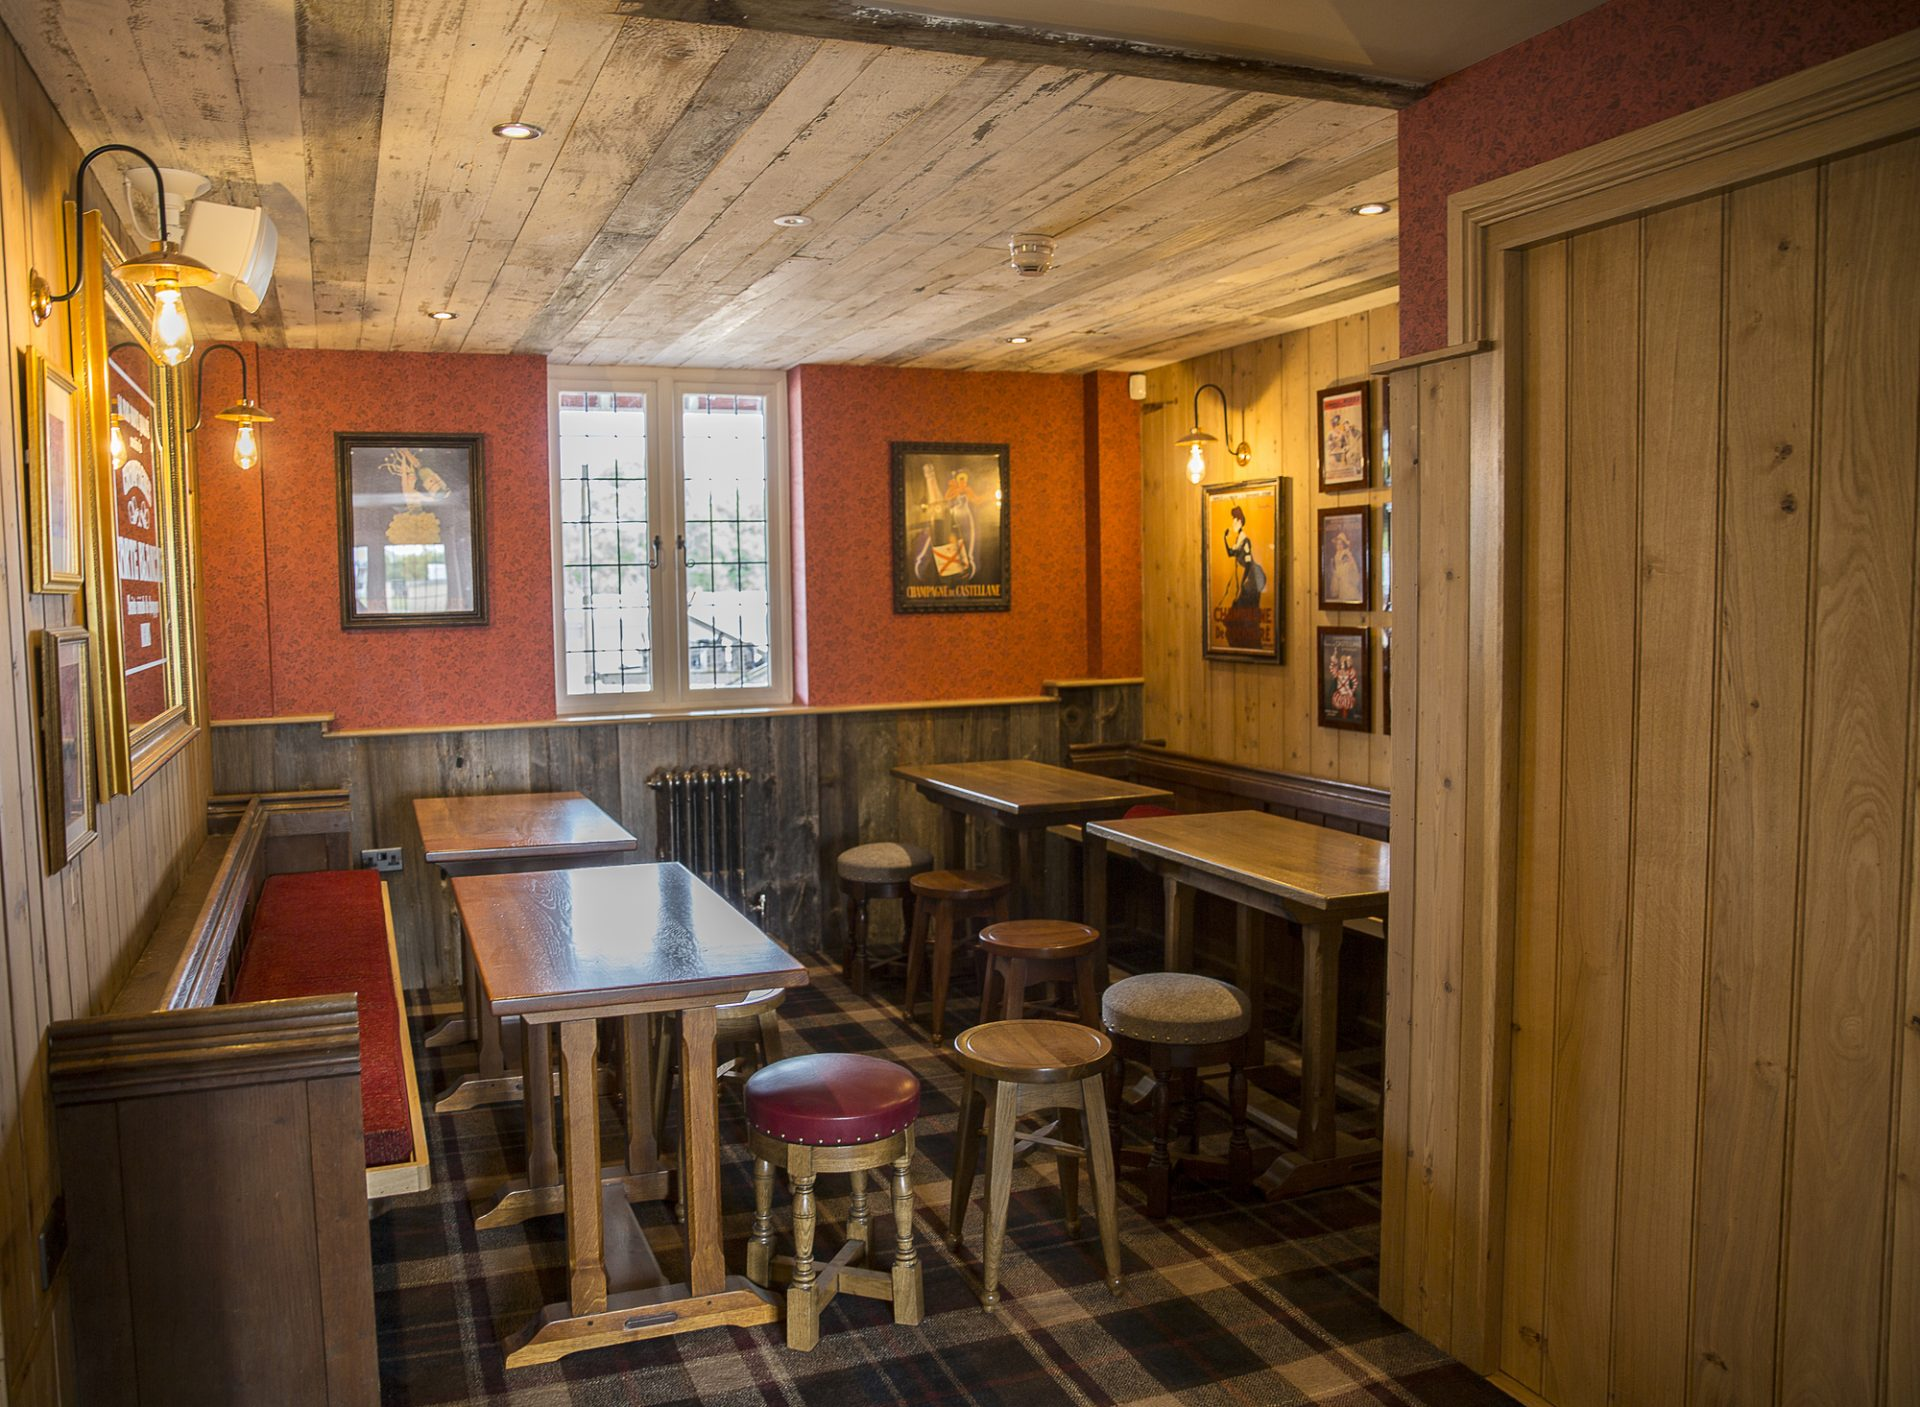 The Millstone Hare has Child friendly areas for families to enjoy